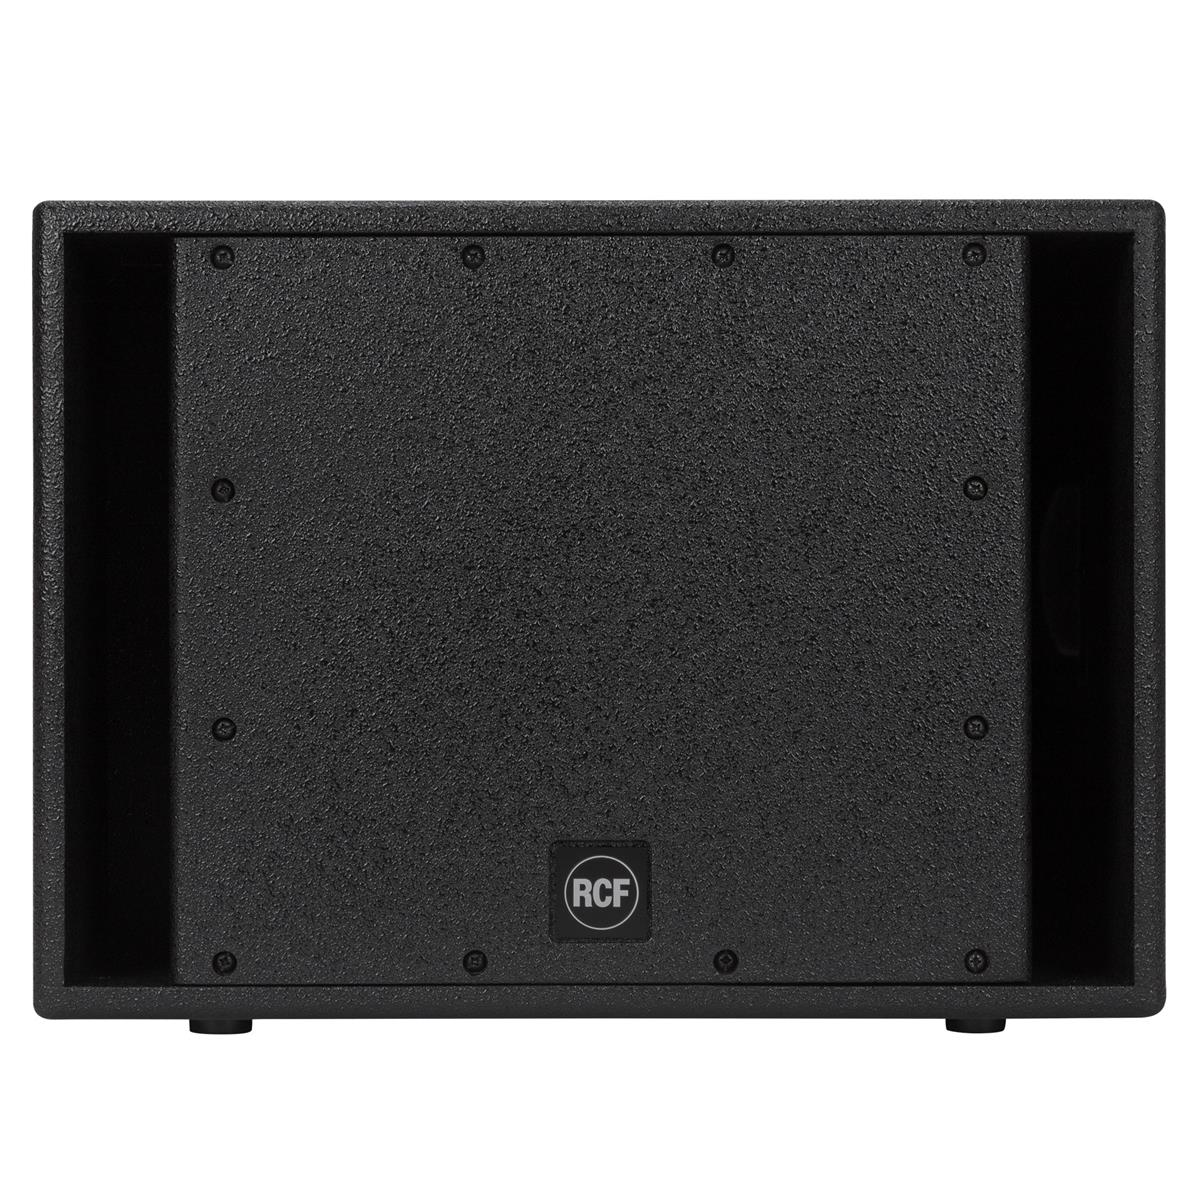 RCF S 4012 Bandpass 12in Subwoofer, 400 W